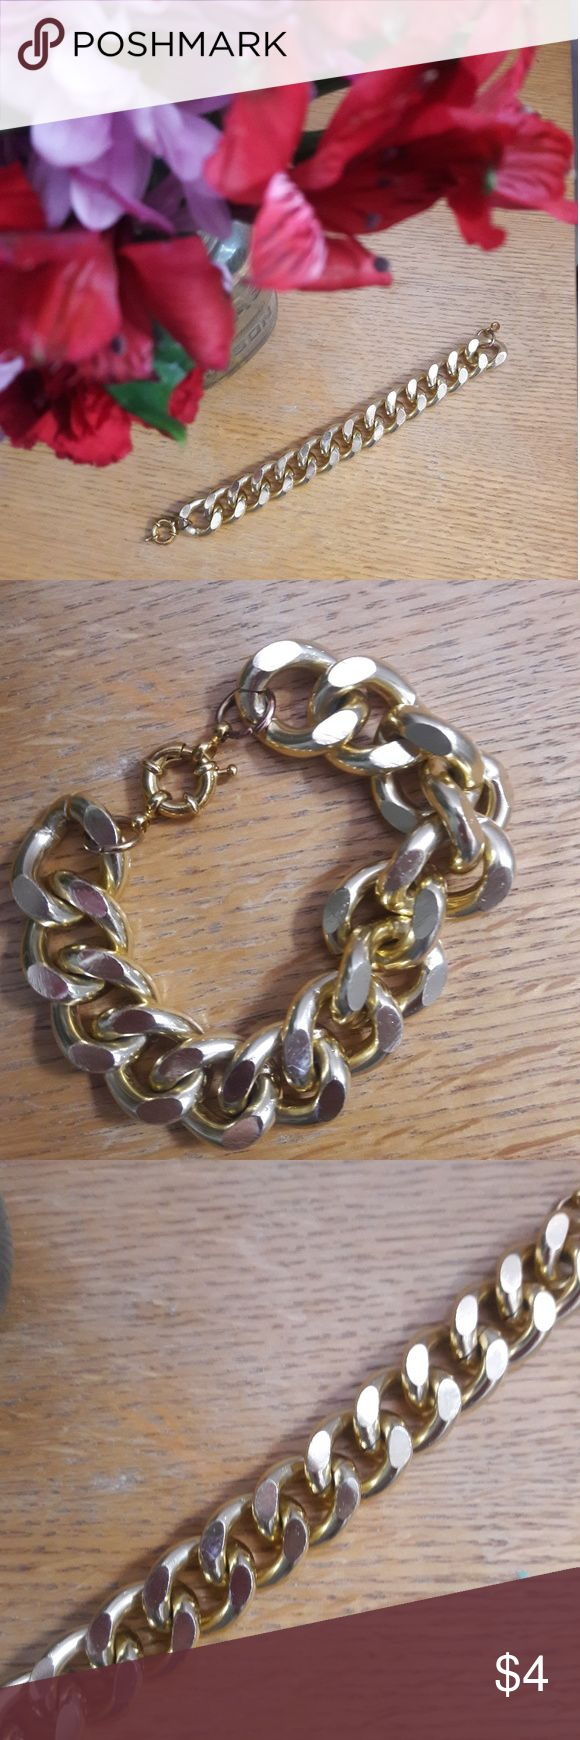 Gold chain link bracelet Gold colored chain link bracelet from Etsy. Large fit with a clasp. Very cute basic to have on hand that looks great dressed up or down. Jewelry Bracelets